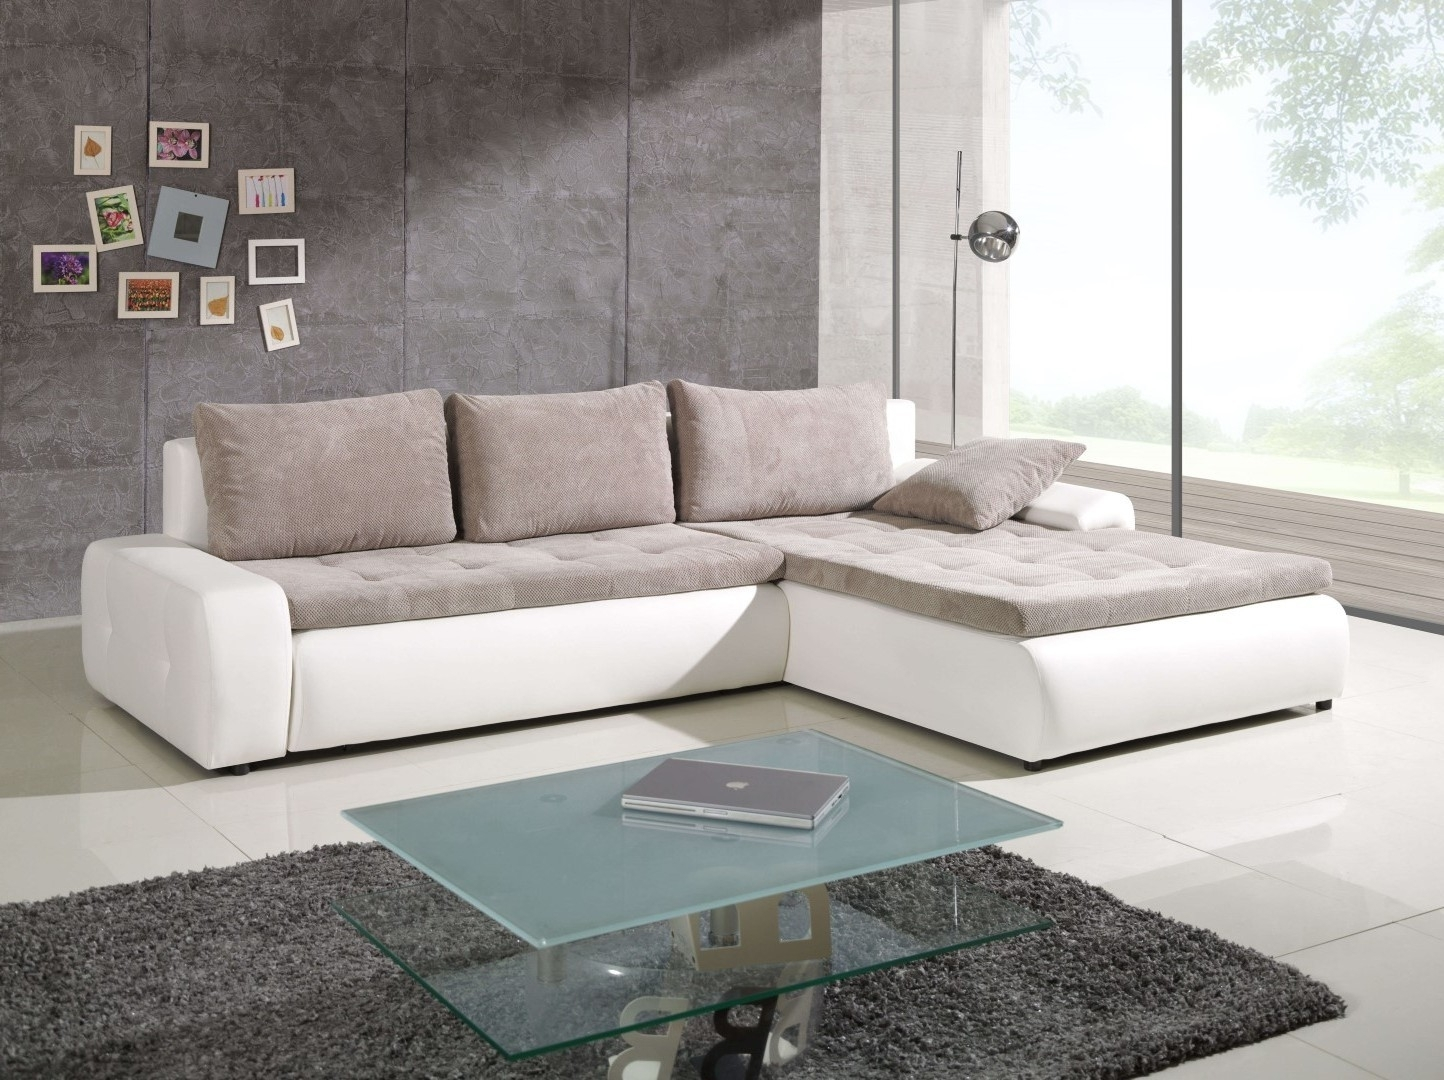 Shop Galileo Sectional Sleeper Sofa With Storage Universal Regarding Sectional Sofas With Storage (View 7 of 10)